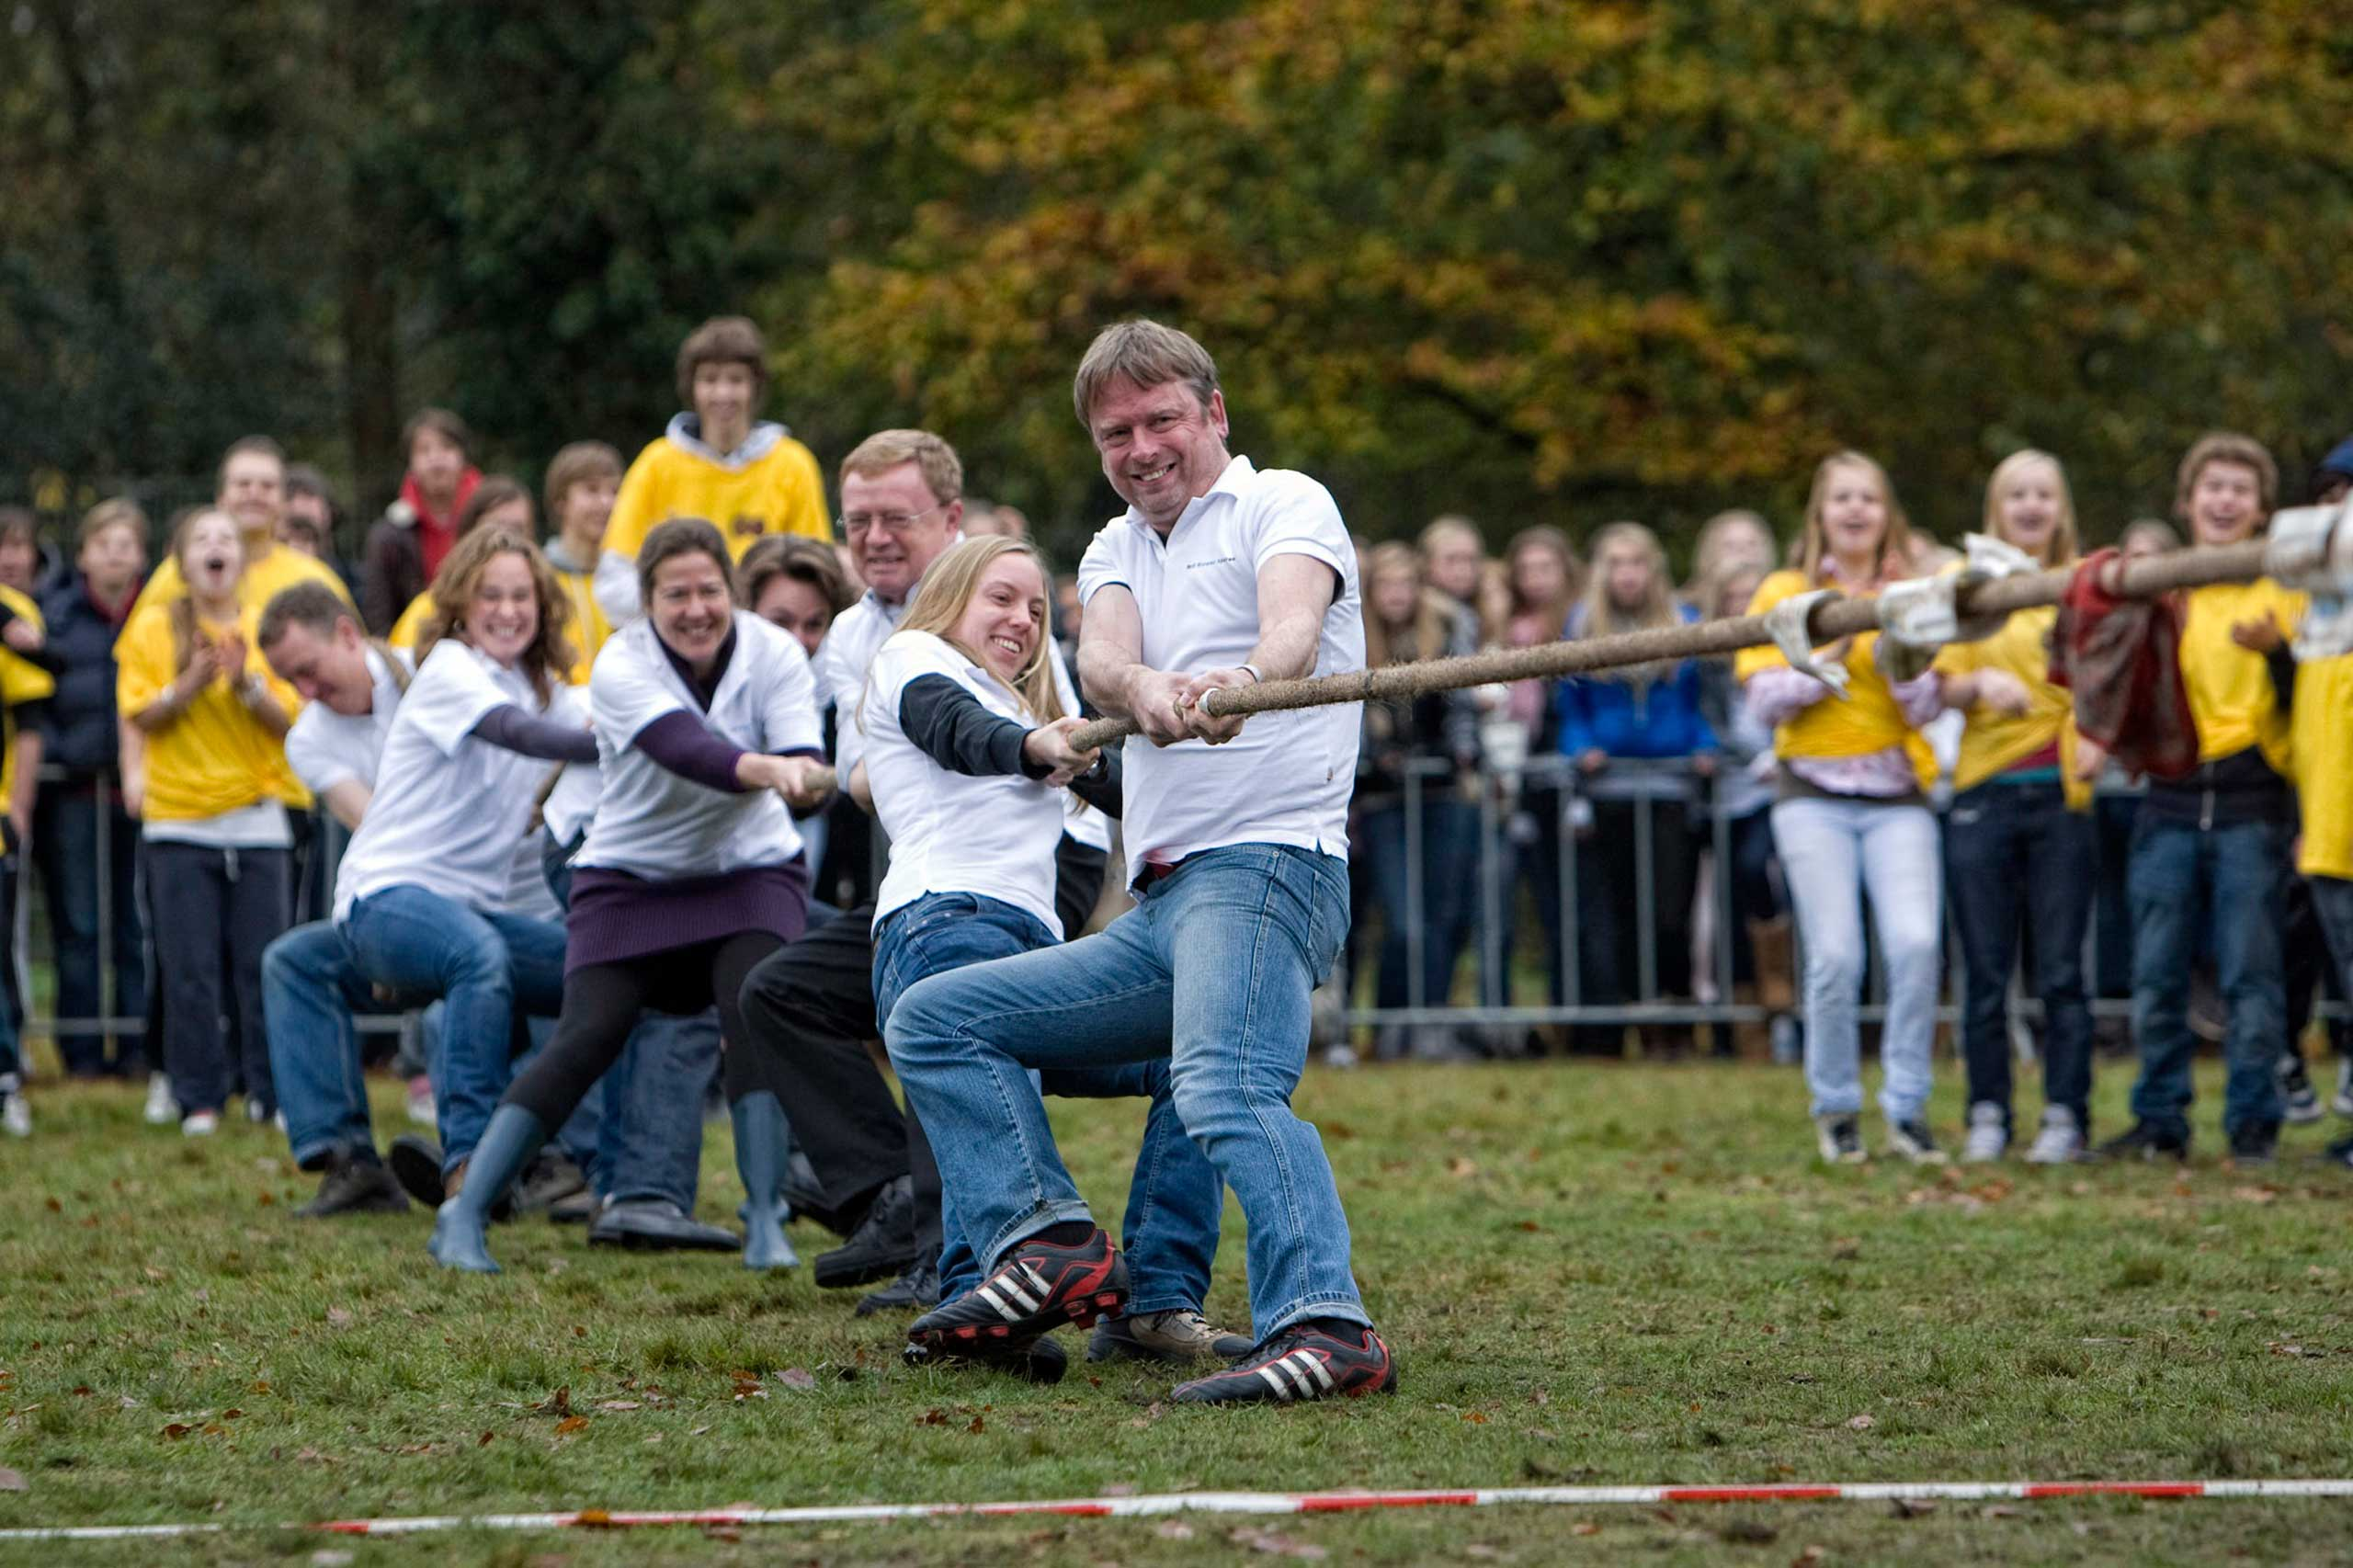 Largest tug of war tournament included 1,290 individuals.